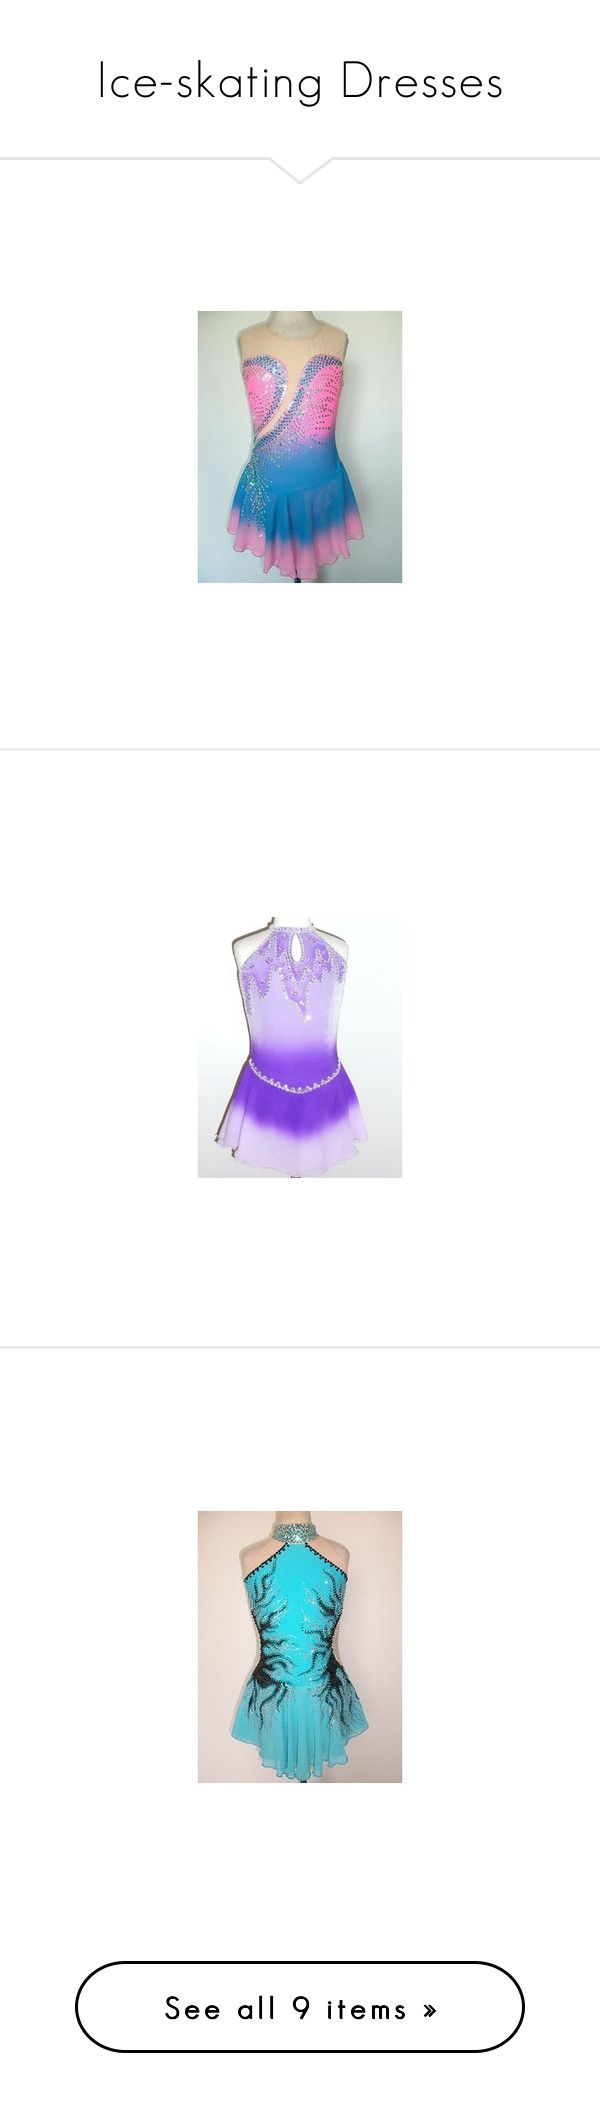 """Ice-skating Dresses"" by frozen1-1 ❤ liked on Polyvore featuring dresses, ice skating, lullabies, sports dress, sport dress, metallic dress, purple cocktail dresses, metallic cocktail dress, purple dress and figure skating"